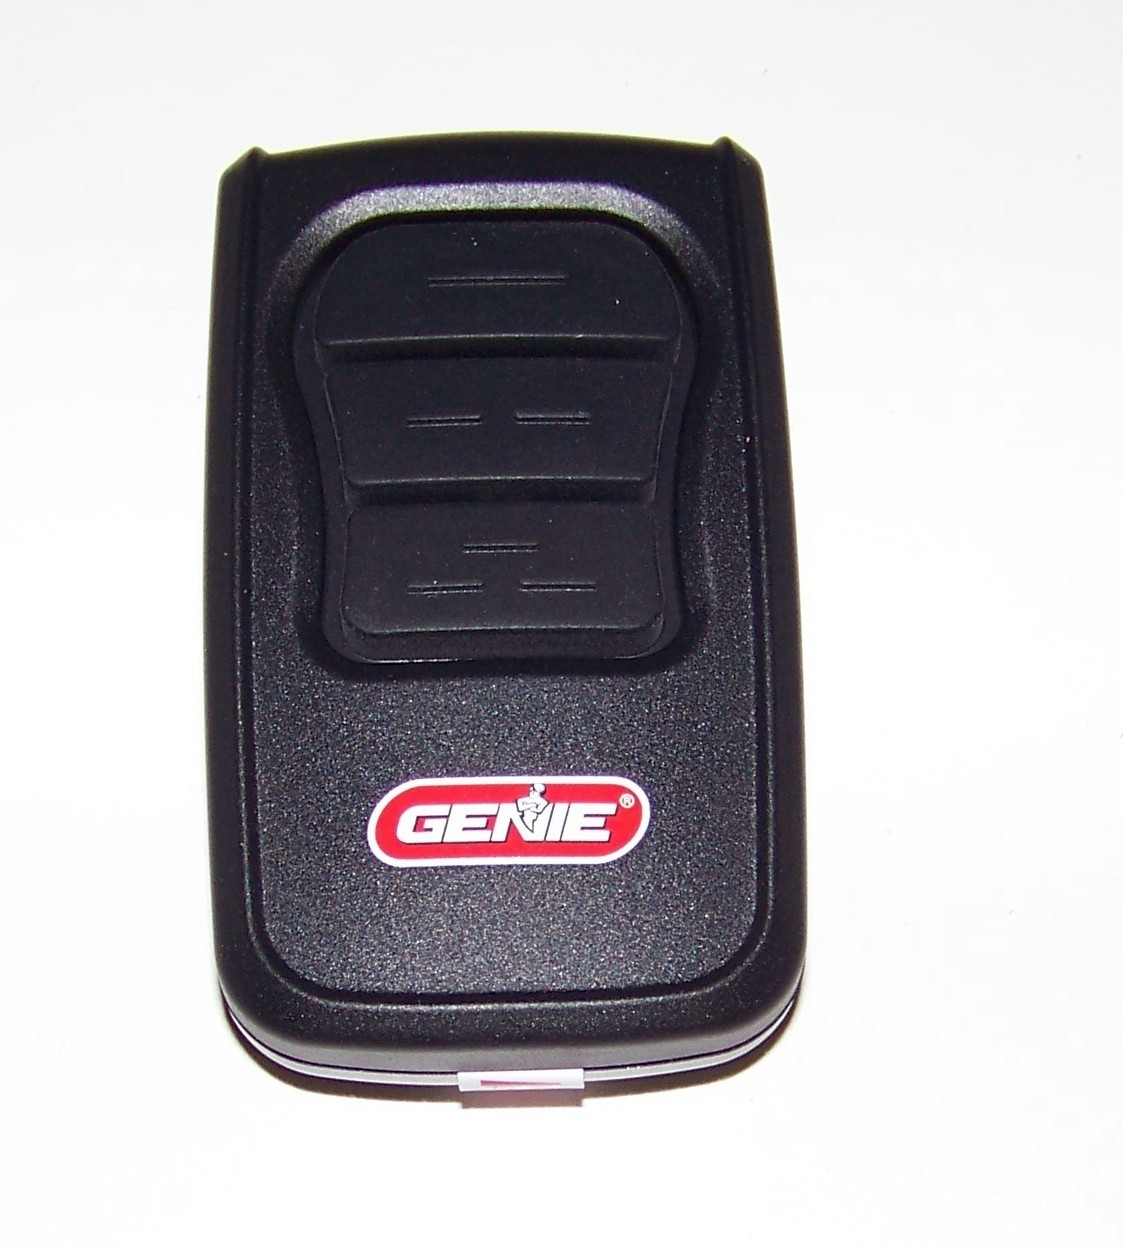 Genie garage door opener remote gm3t bx for 12 garage door opener